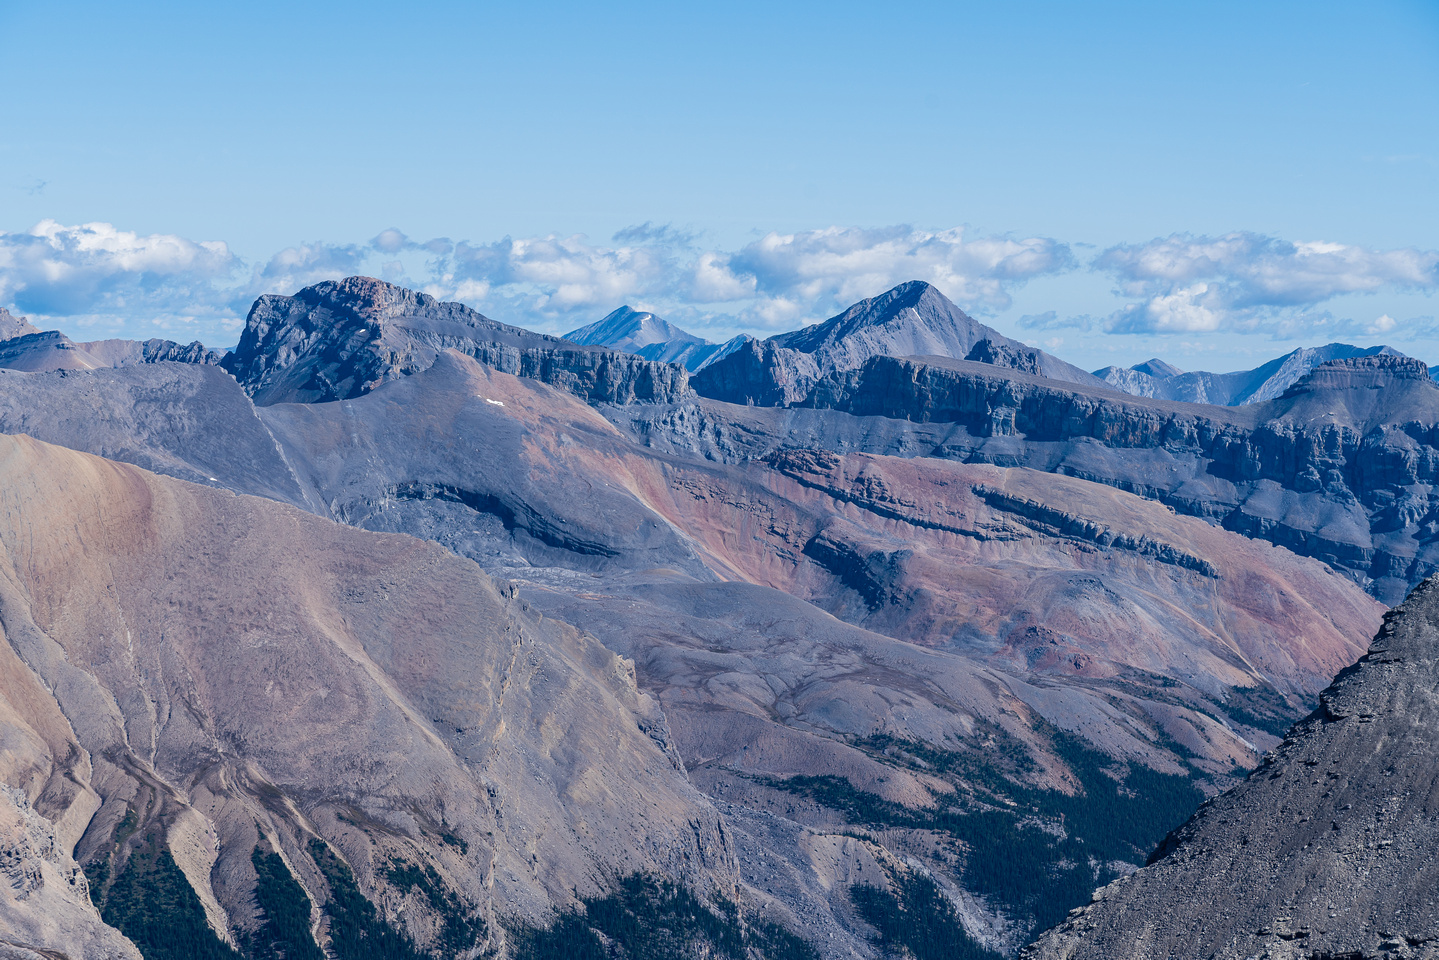 Icefall Mountain (L) and Mamen Peak (C-R) are both over 10,500 feet high. Whelk in between them.